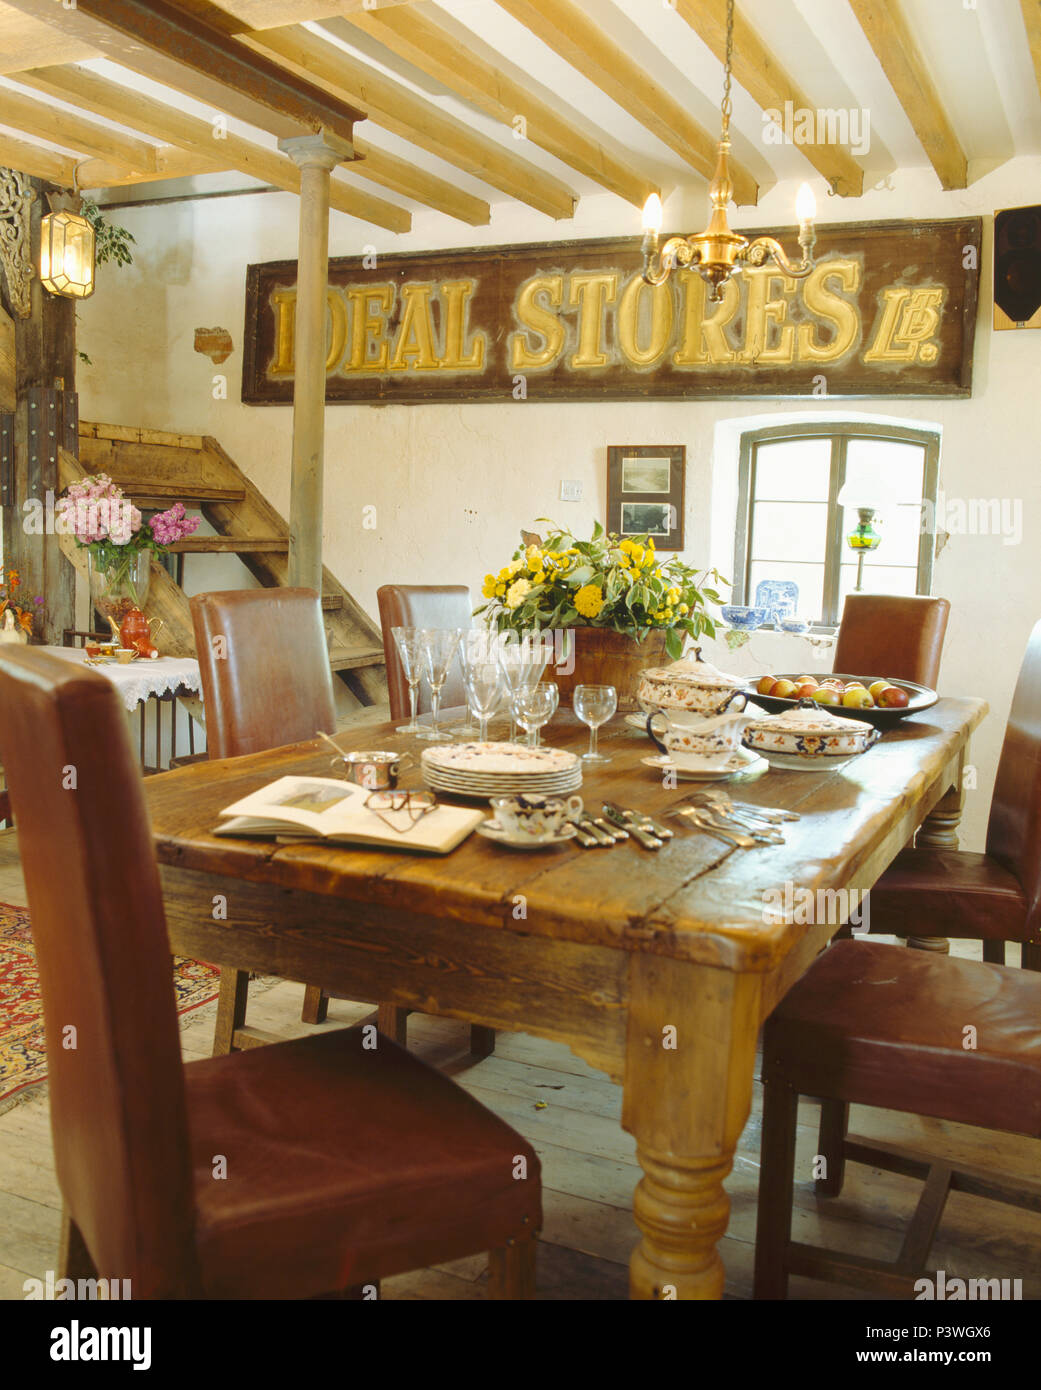 Old store sign on wall in country dining room with ...